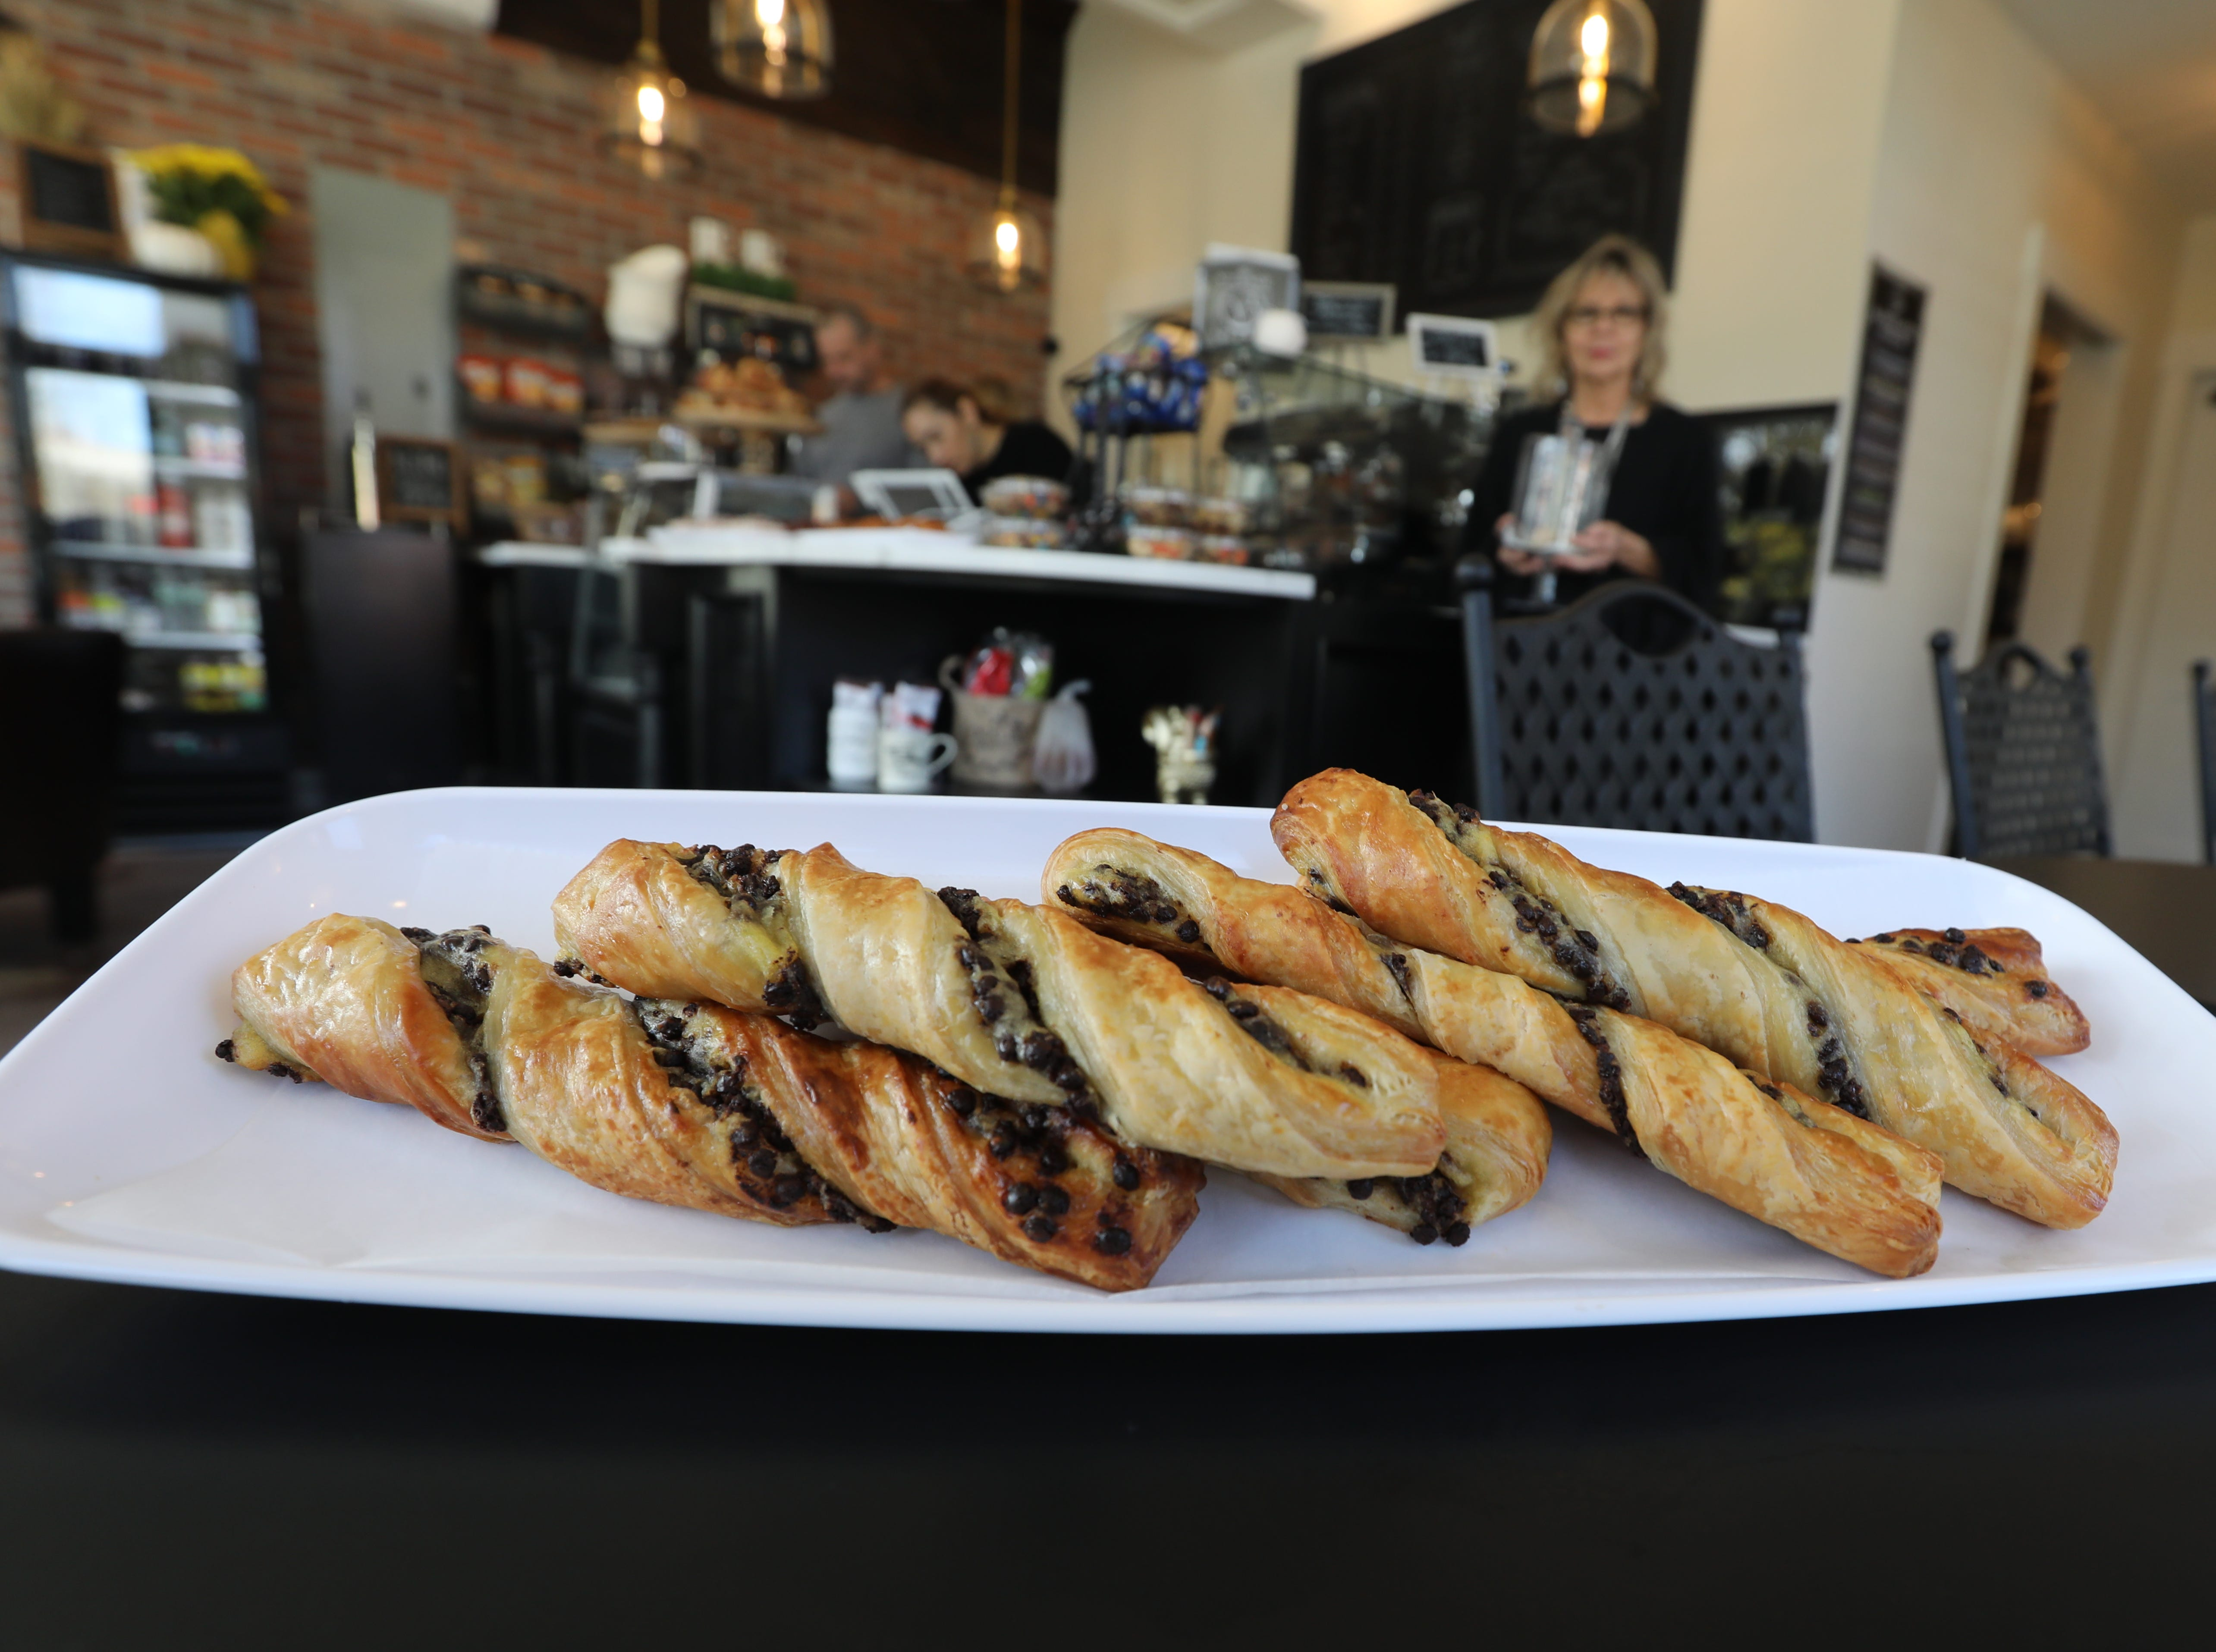 Village Twists, croissant with cream cheese and chocolate chips at the Village Blend Cafe in Sloatsburg Nov. 8, 2018.